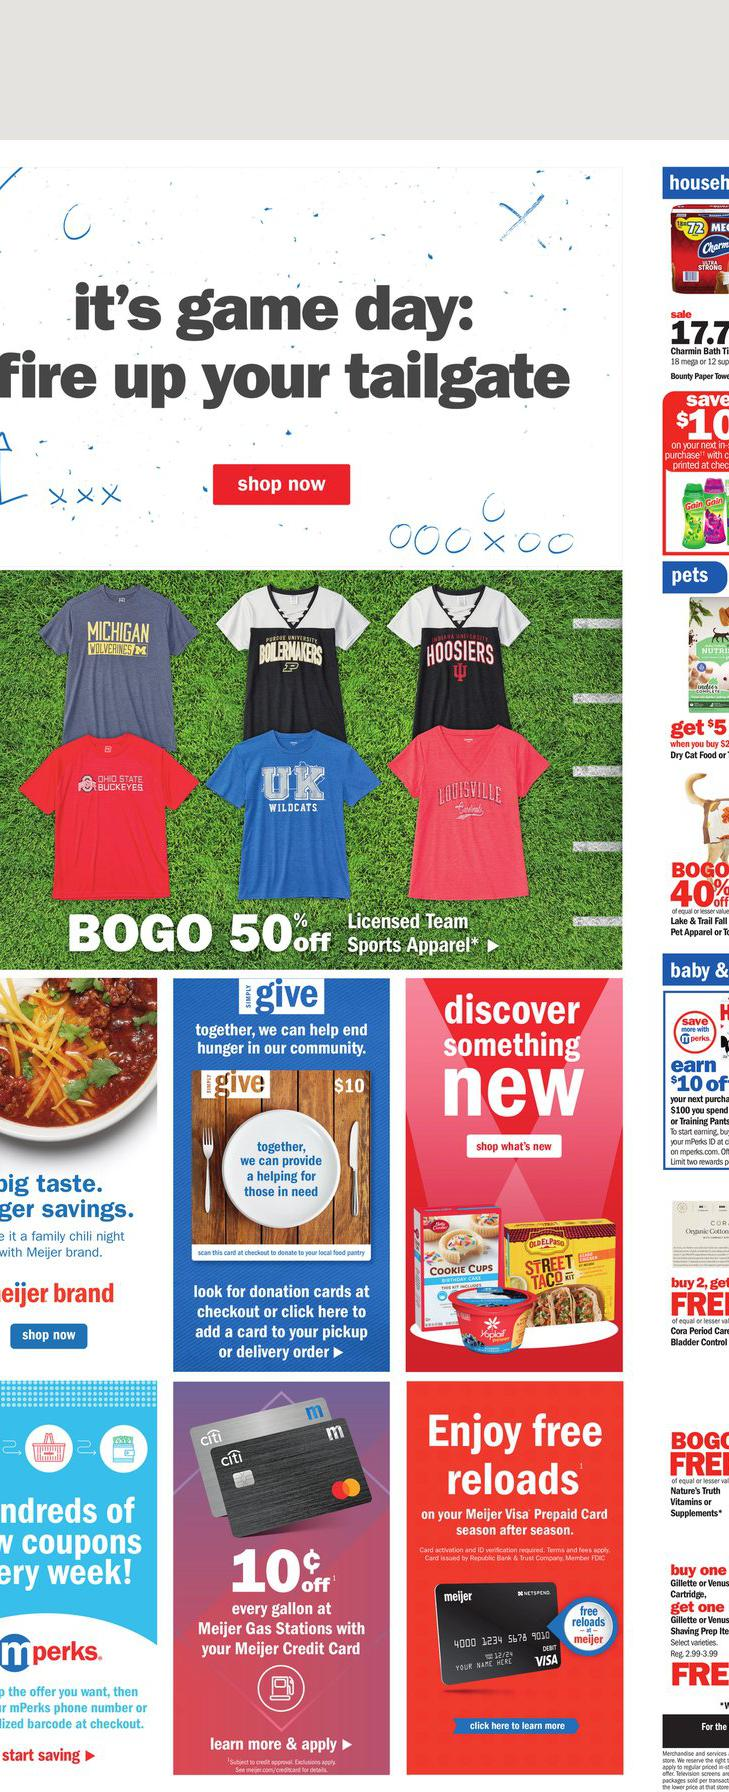 12.09.2021 Meijer ad 13. page